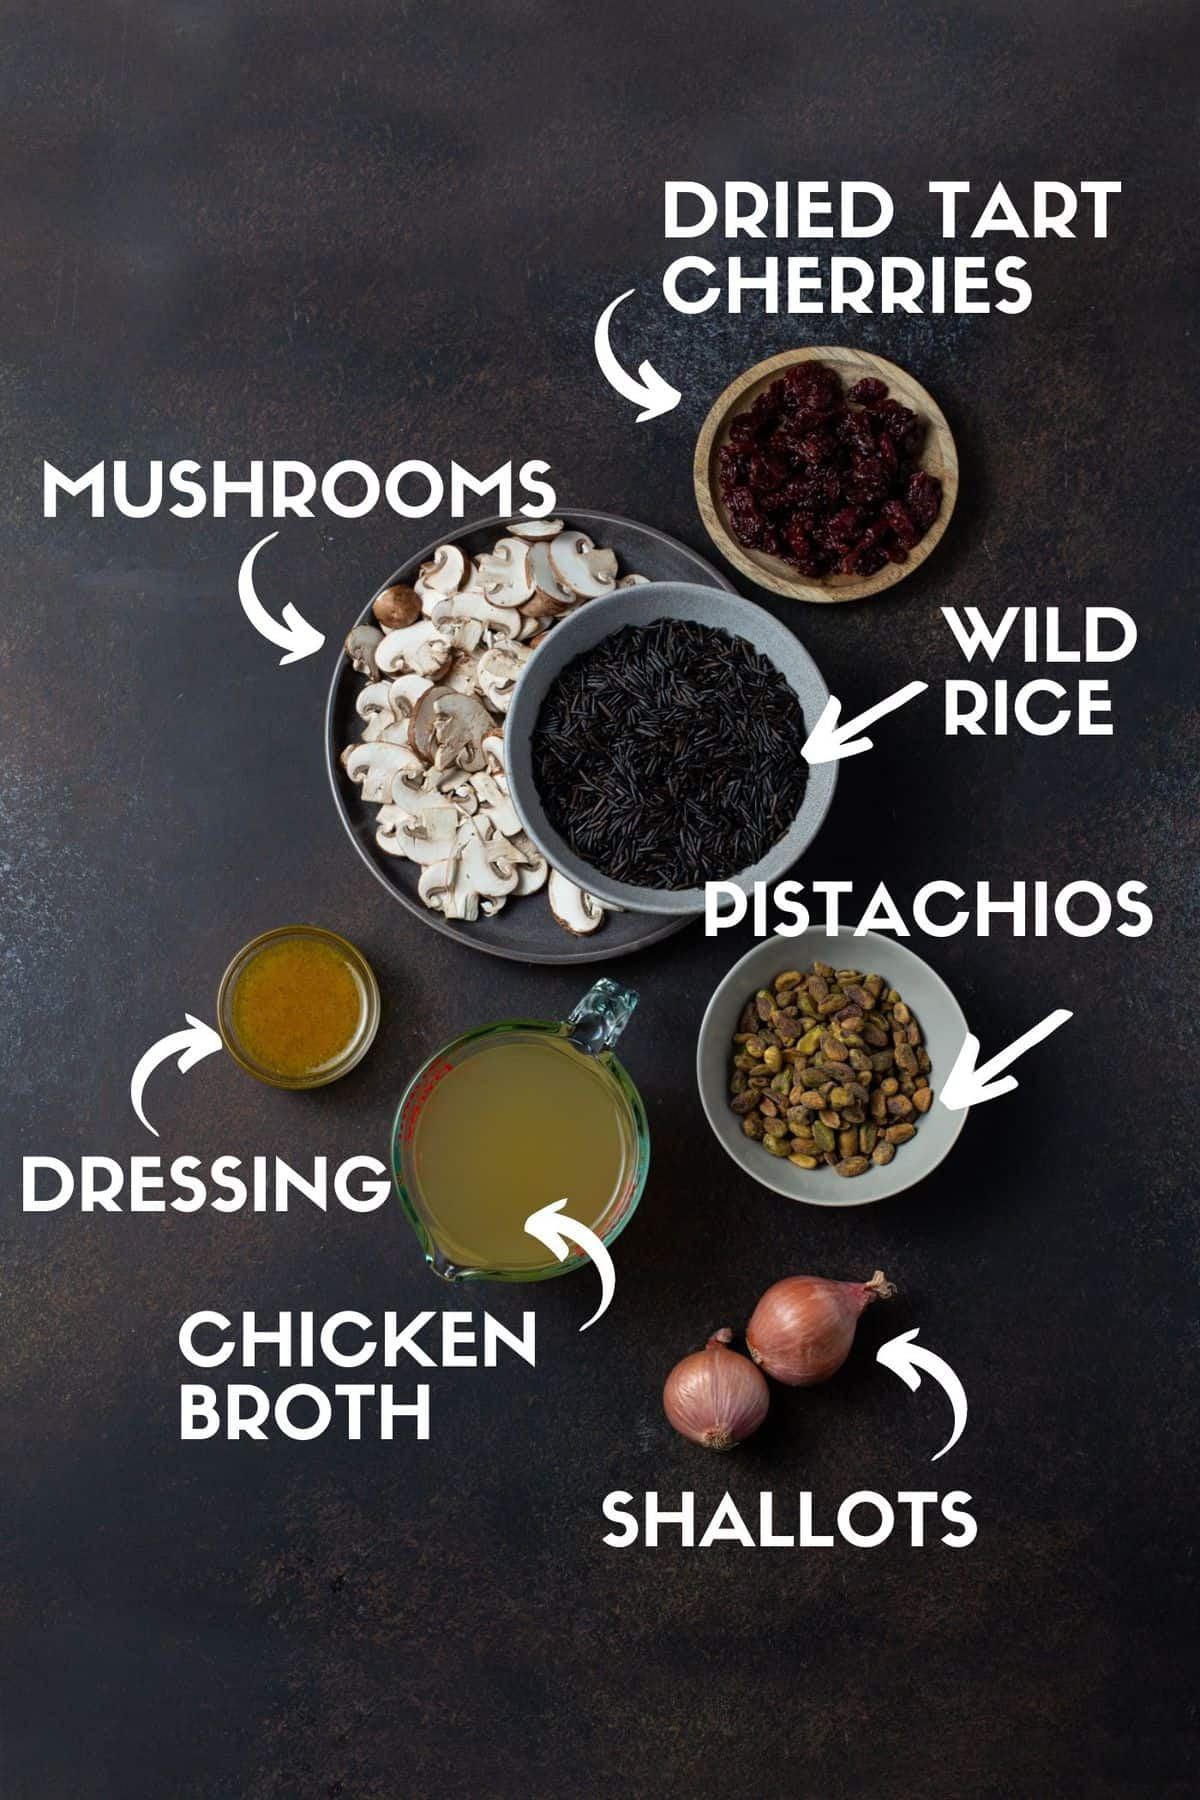 Ingredients for wild rice recipe including wild rice, mushrooms, pistachios, dried cherries, chicken broth, shallots and a maple dijon dressing.